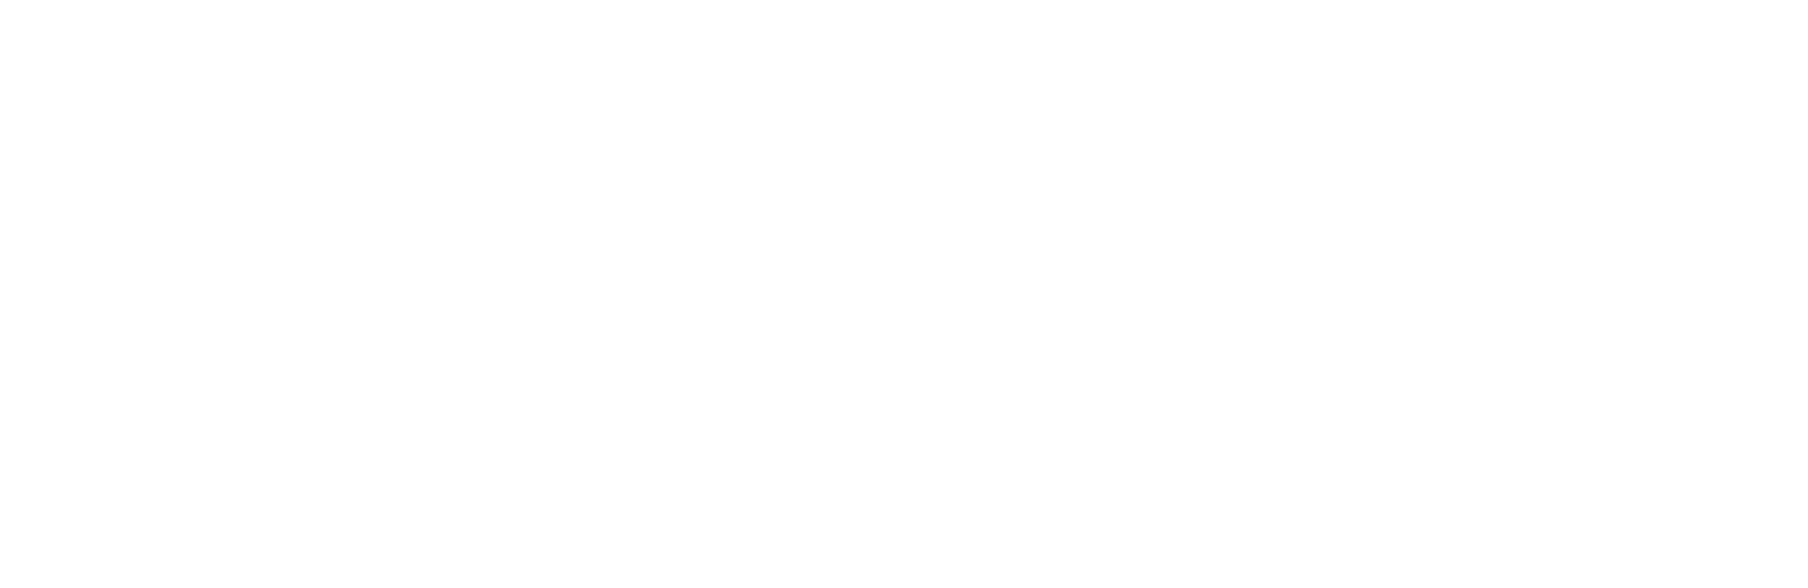 Outpost-North-Bluegrass-white.png